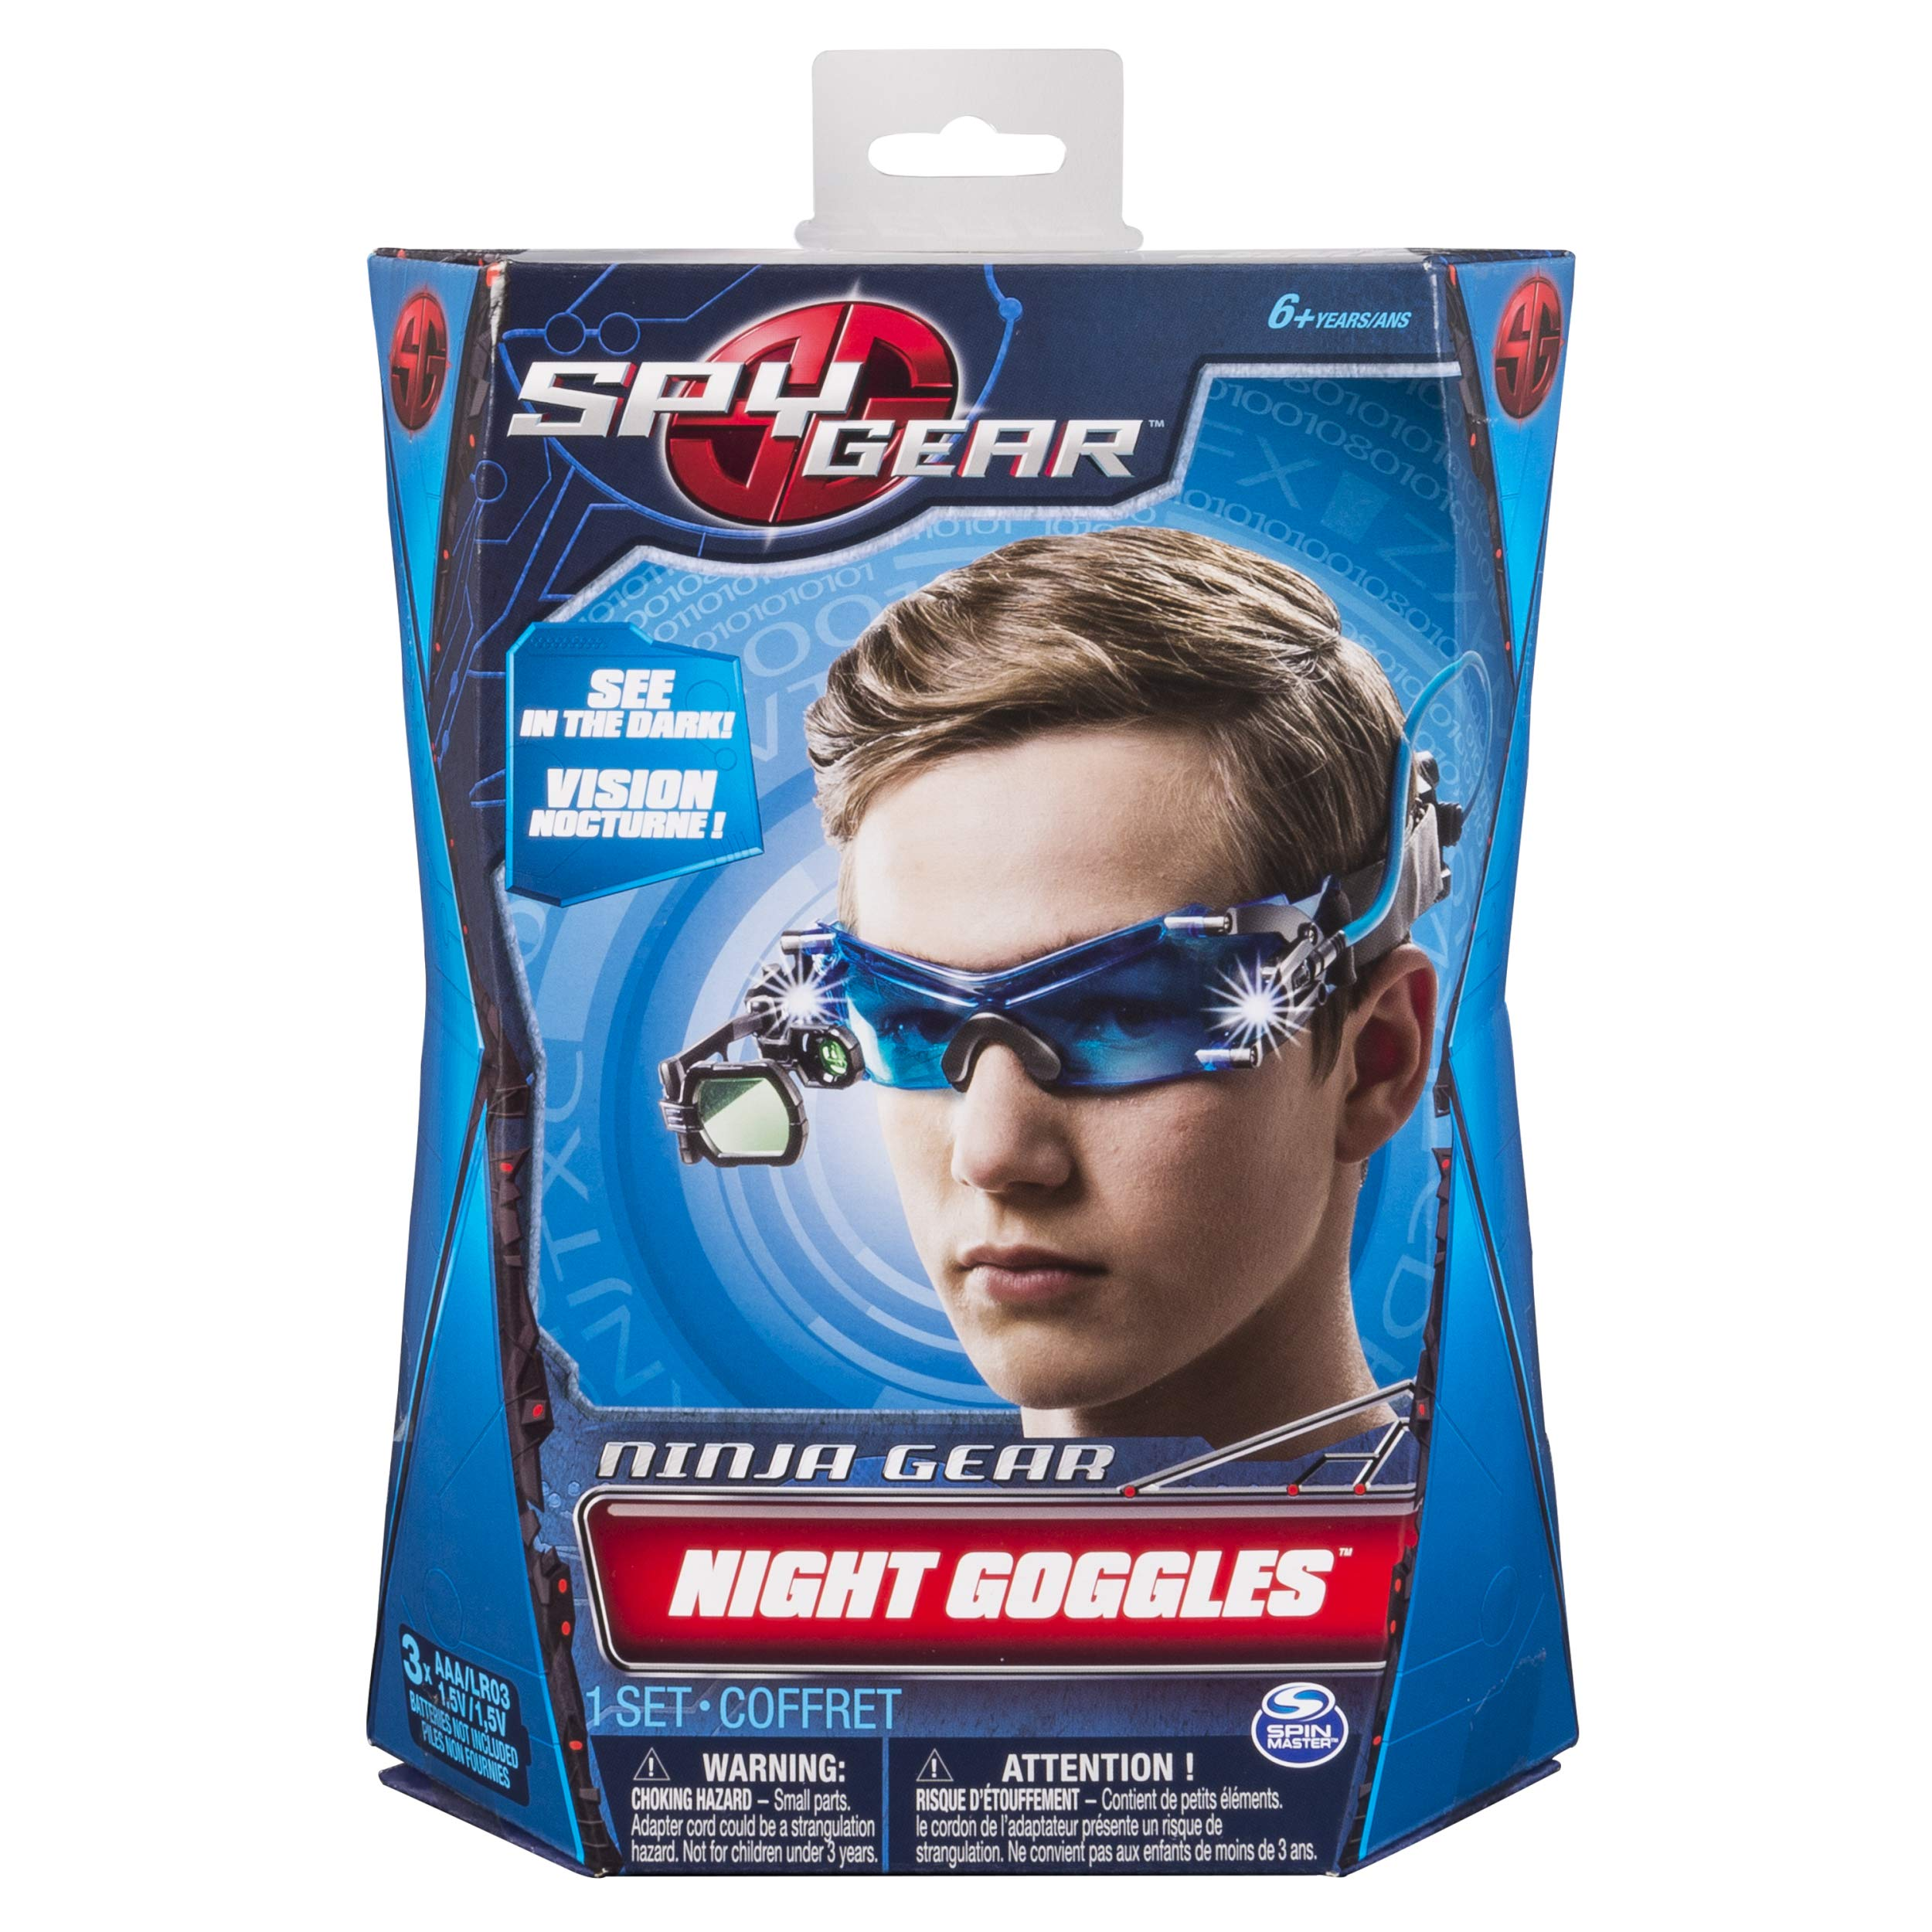 Spy Gear - Ninja Gear - Night Goggles by SpinMaster